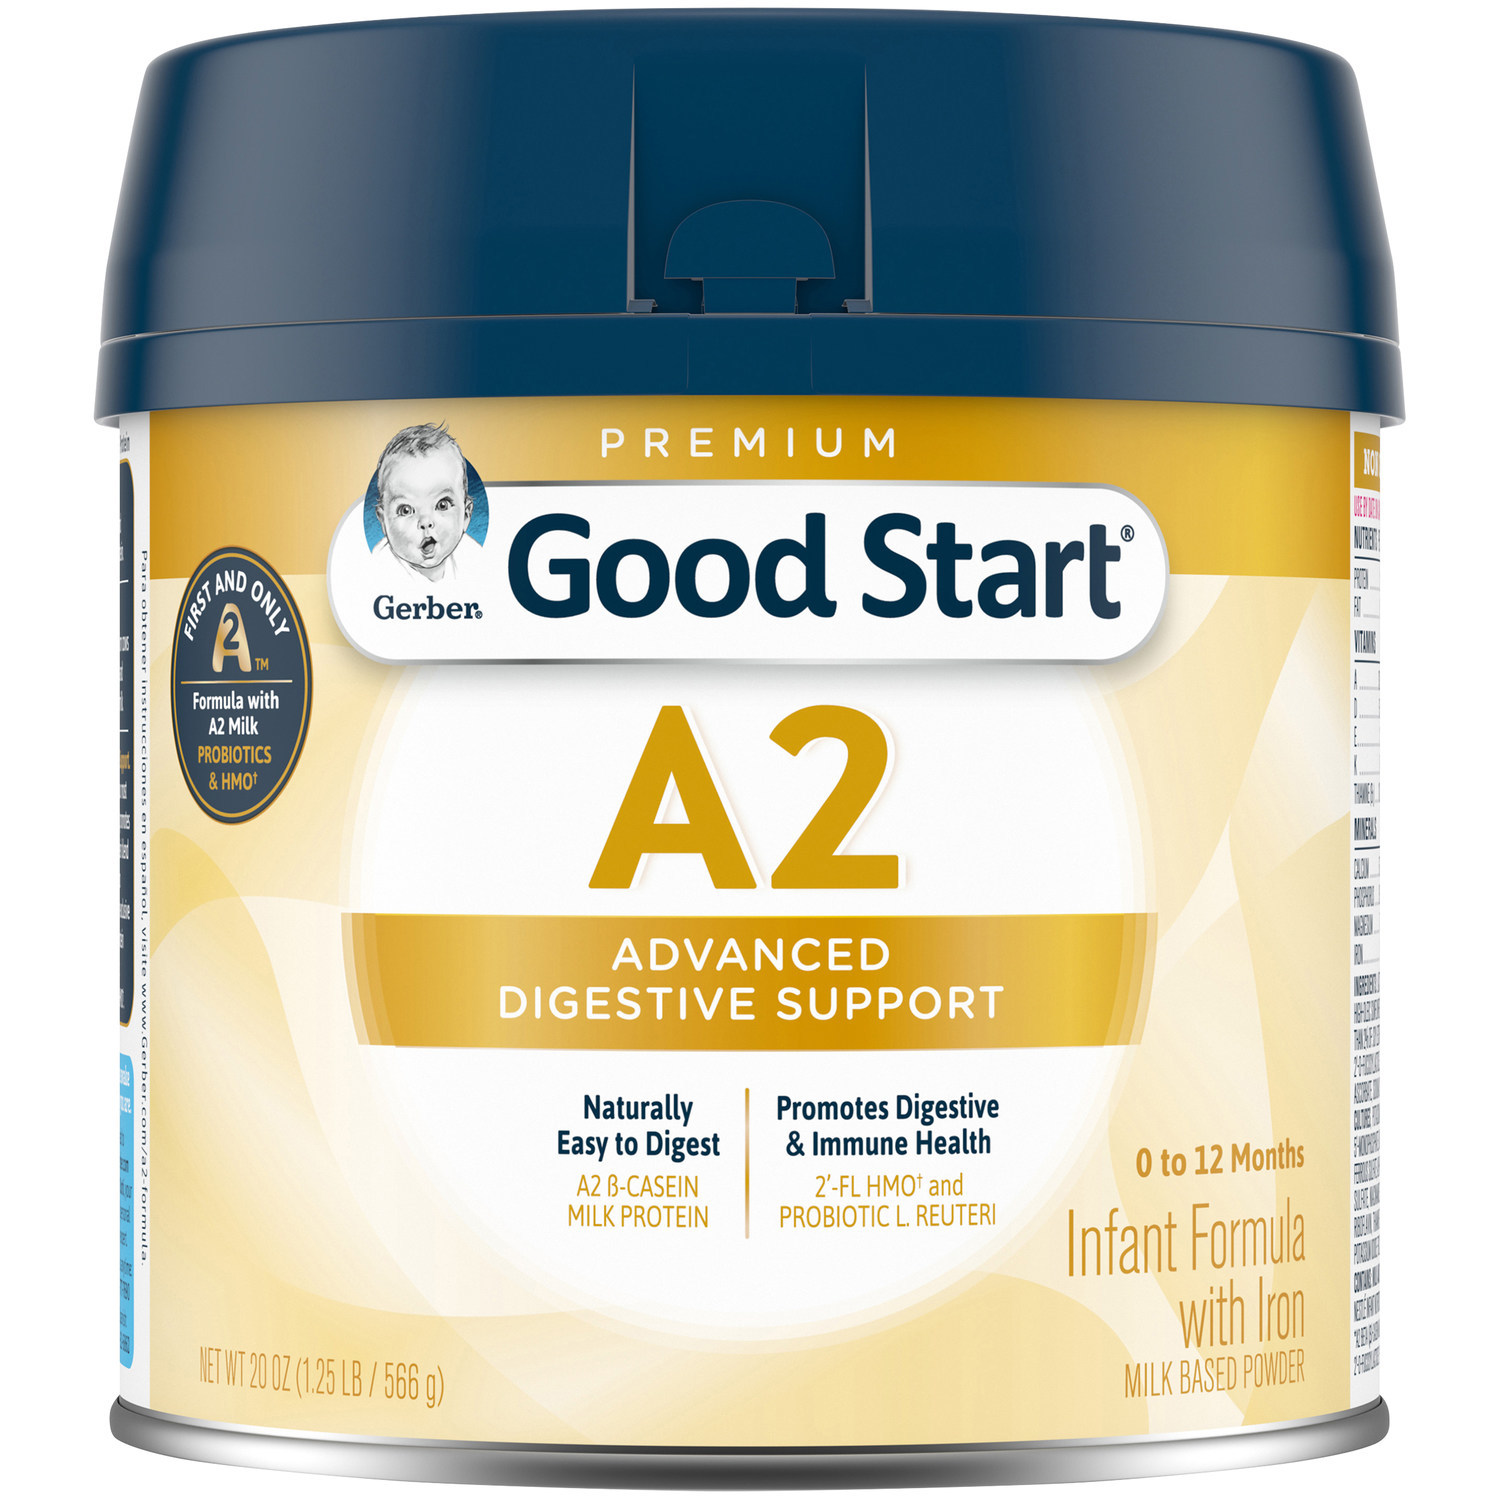 Gerber Good Start Launches Breakthrough A2 Infant And Toddler Nutrition To Support Digestive Comfort